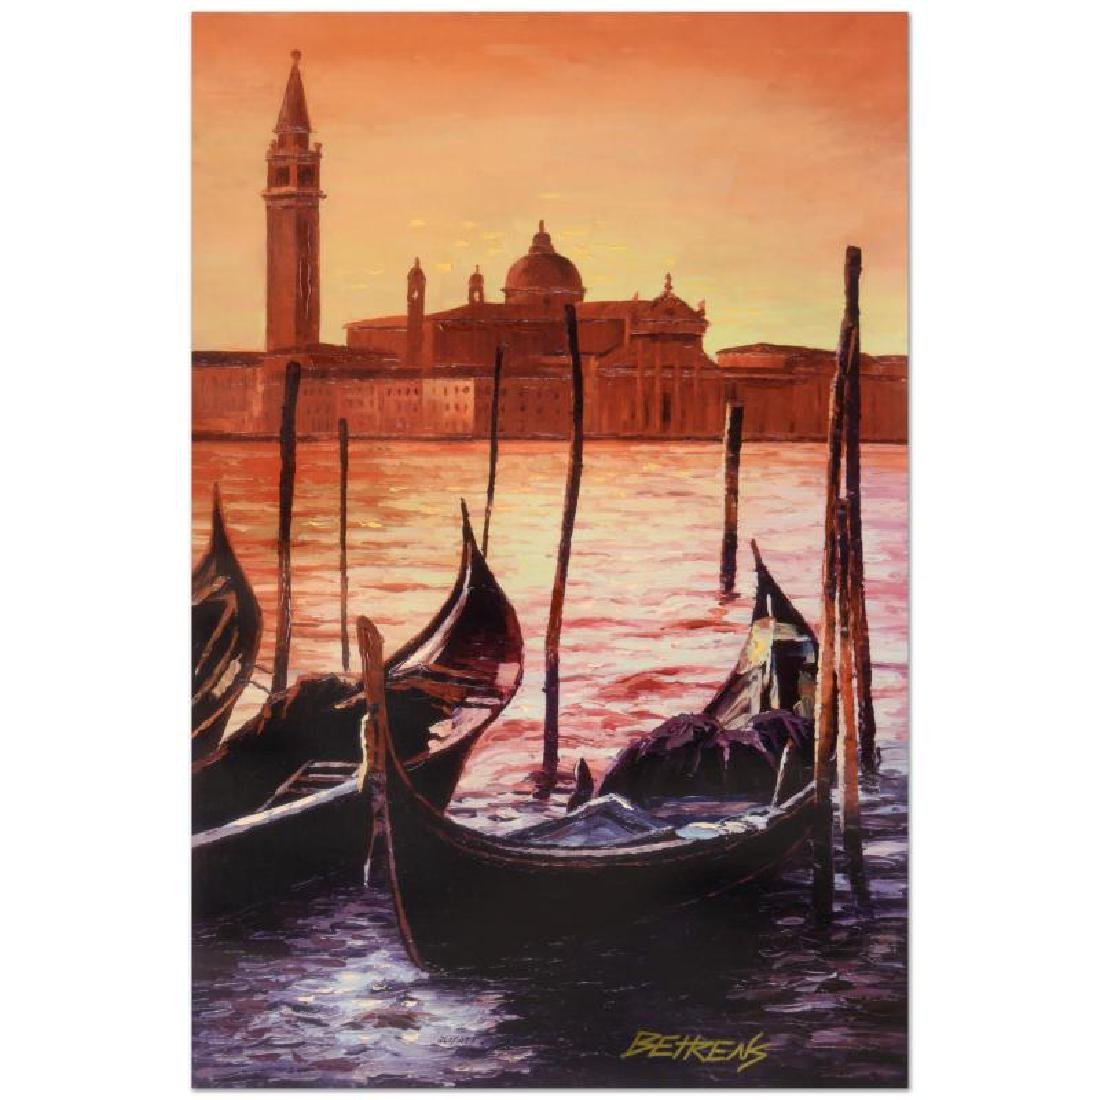 Sunset on the Grand Canal 4 by Behrens (1933-2014)